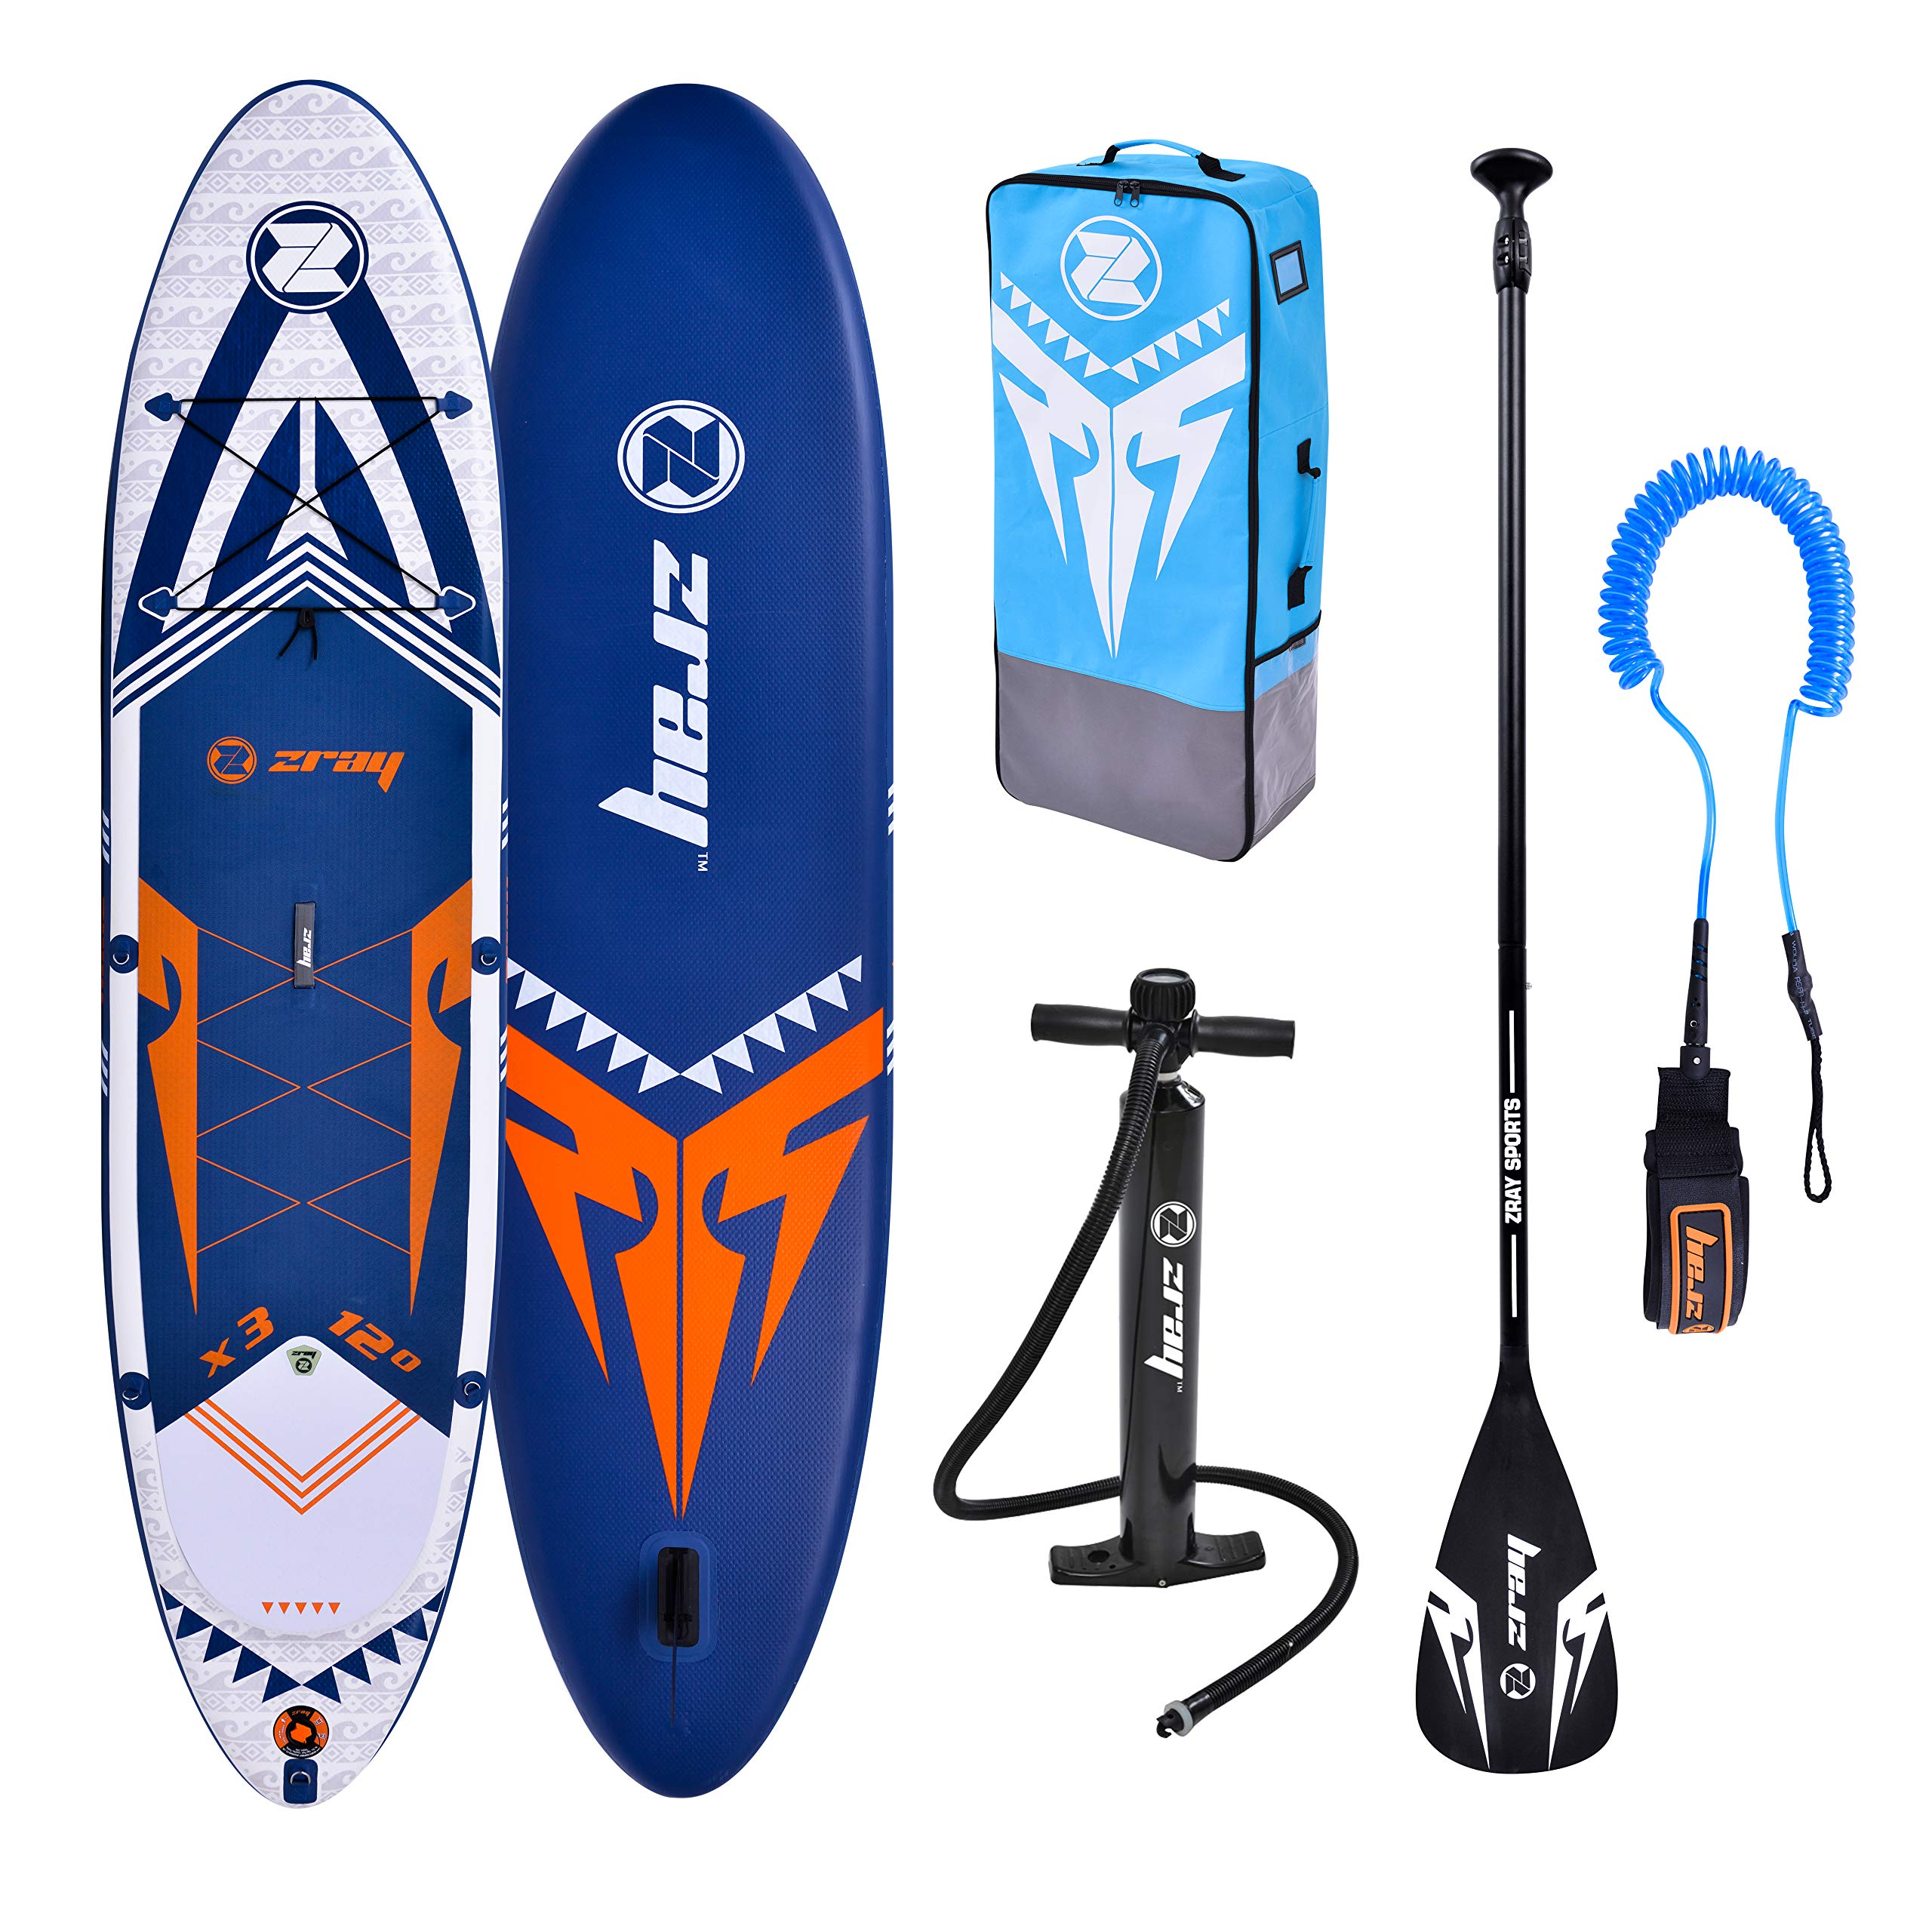 Zray X-Rider 12 Tabla Sup, Adultos Unisex, Multicolor, Uni: Amazon.es: Deportes y aire libre